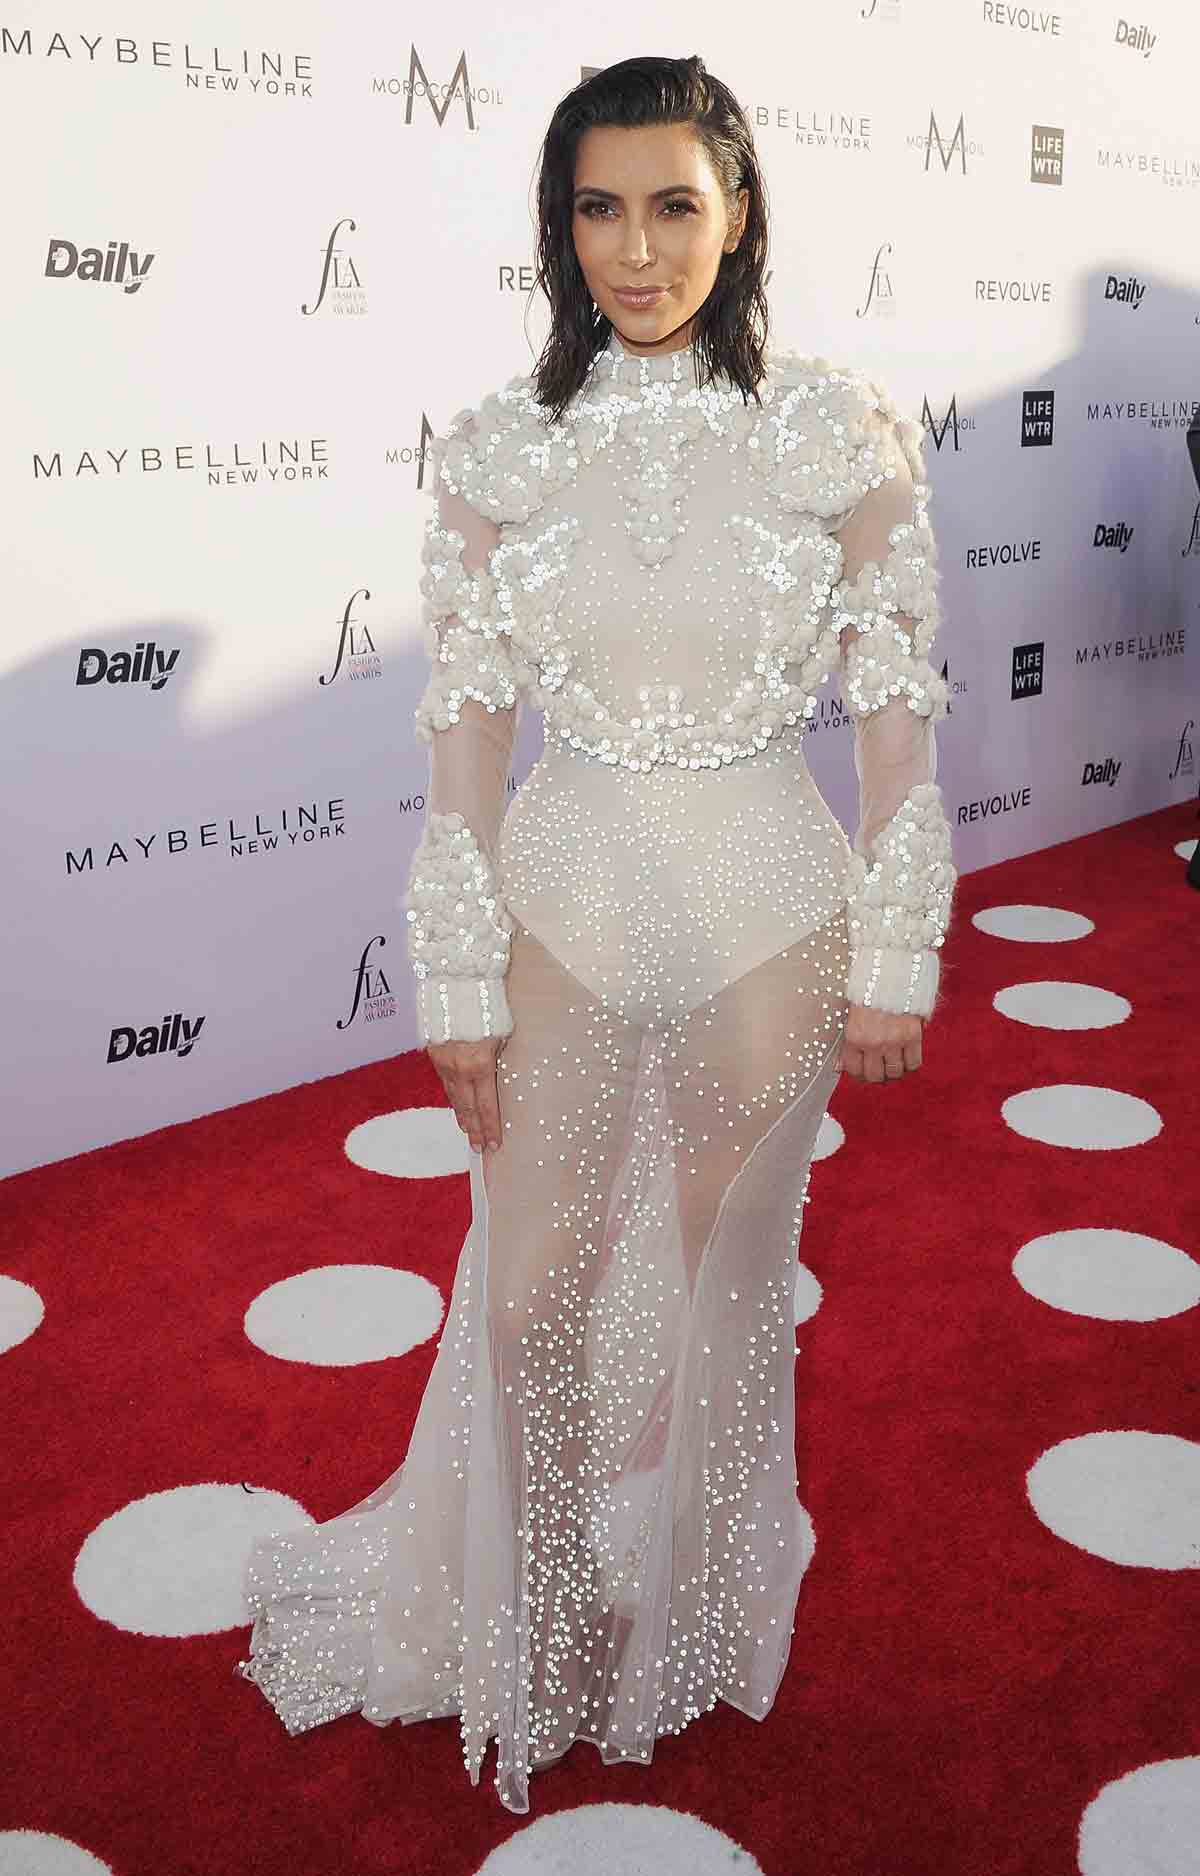 Kim Kardashian at the Daily Front Row's 3rd Annual Fashion Los Angeles Awards on Sunday, April 2